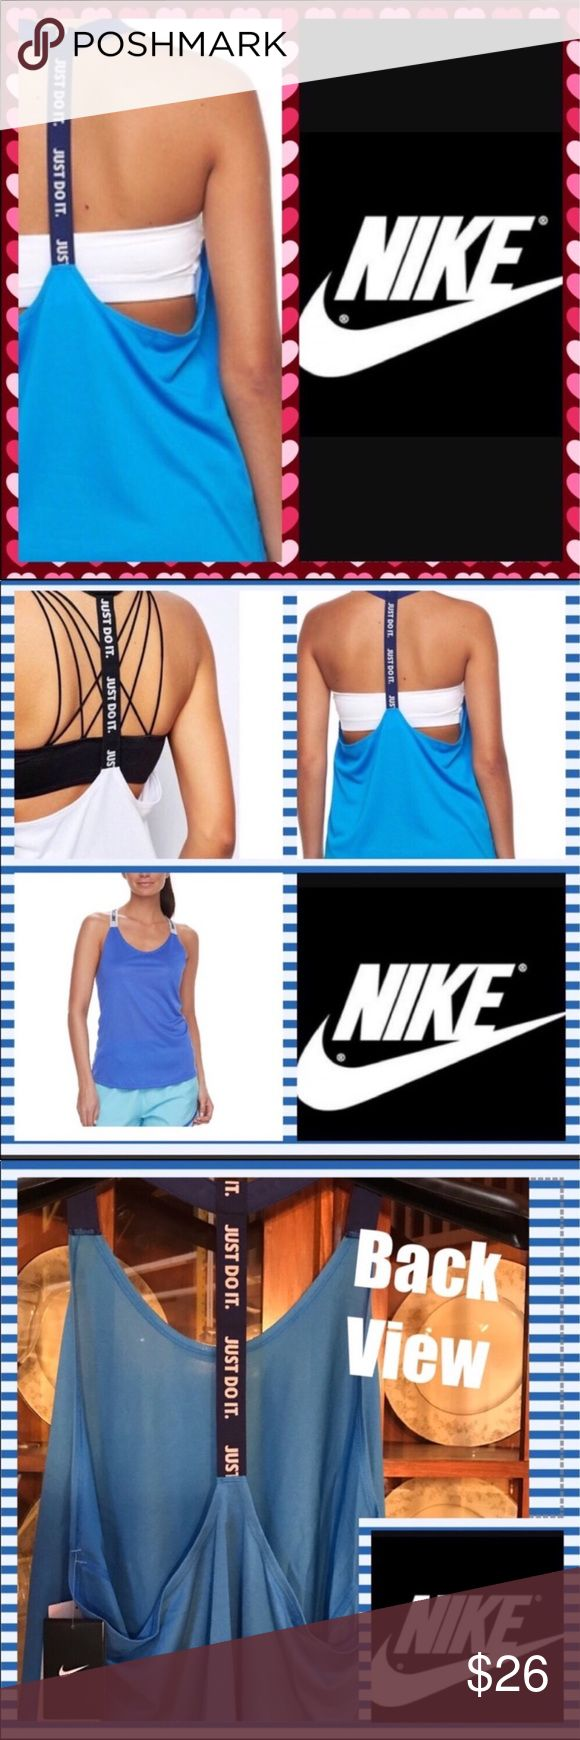 🔵Nike Elastica Nike racer back athletic top. Looks great with a sports bra. Color is light blue with navy blue strap. Nike Tops Tank Tops